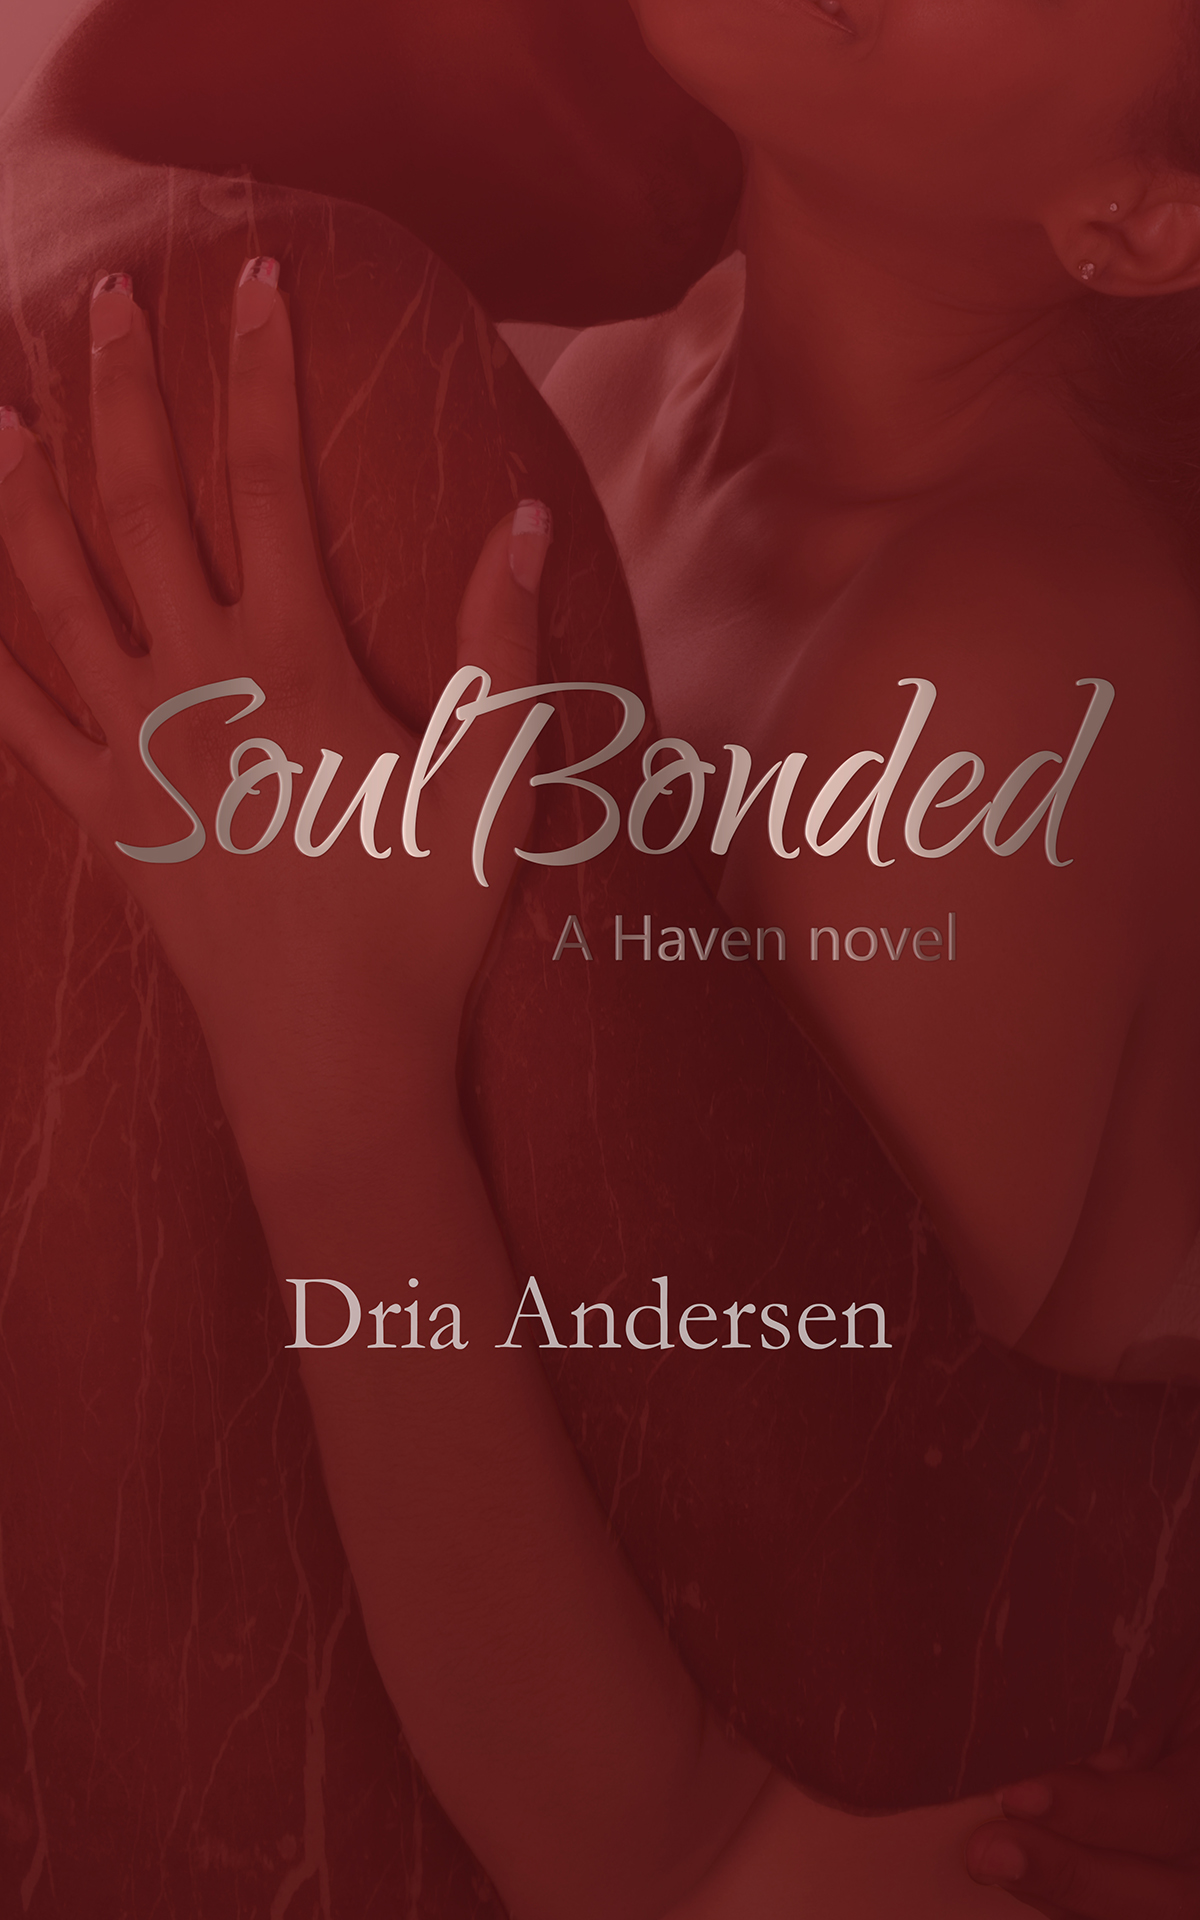 SoulBonded